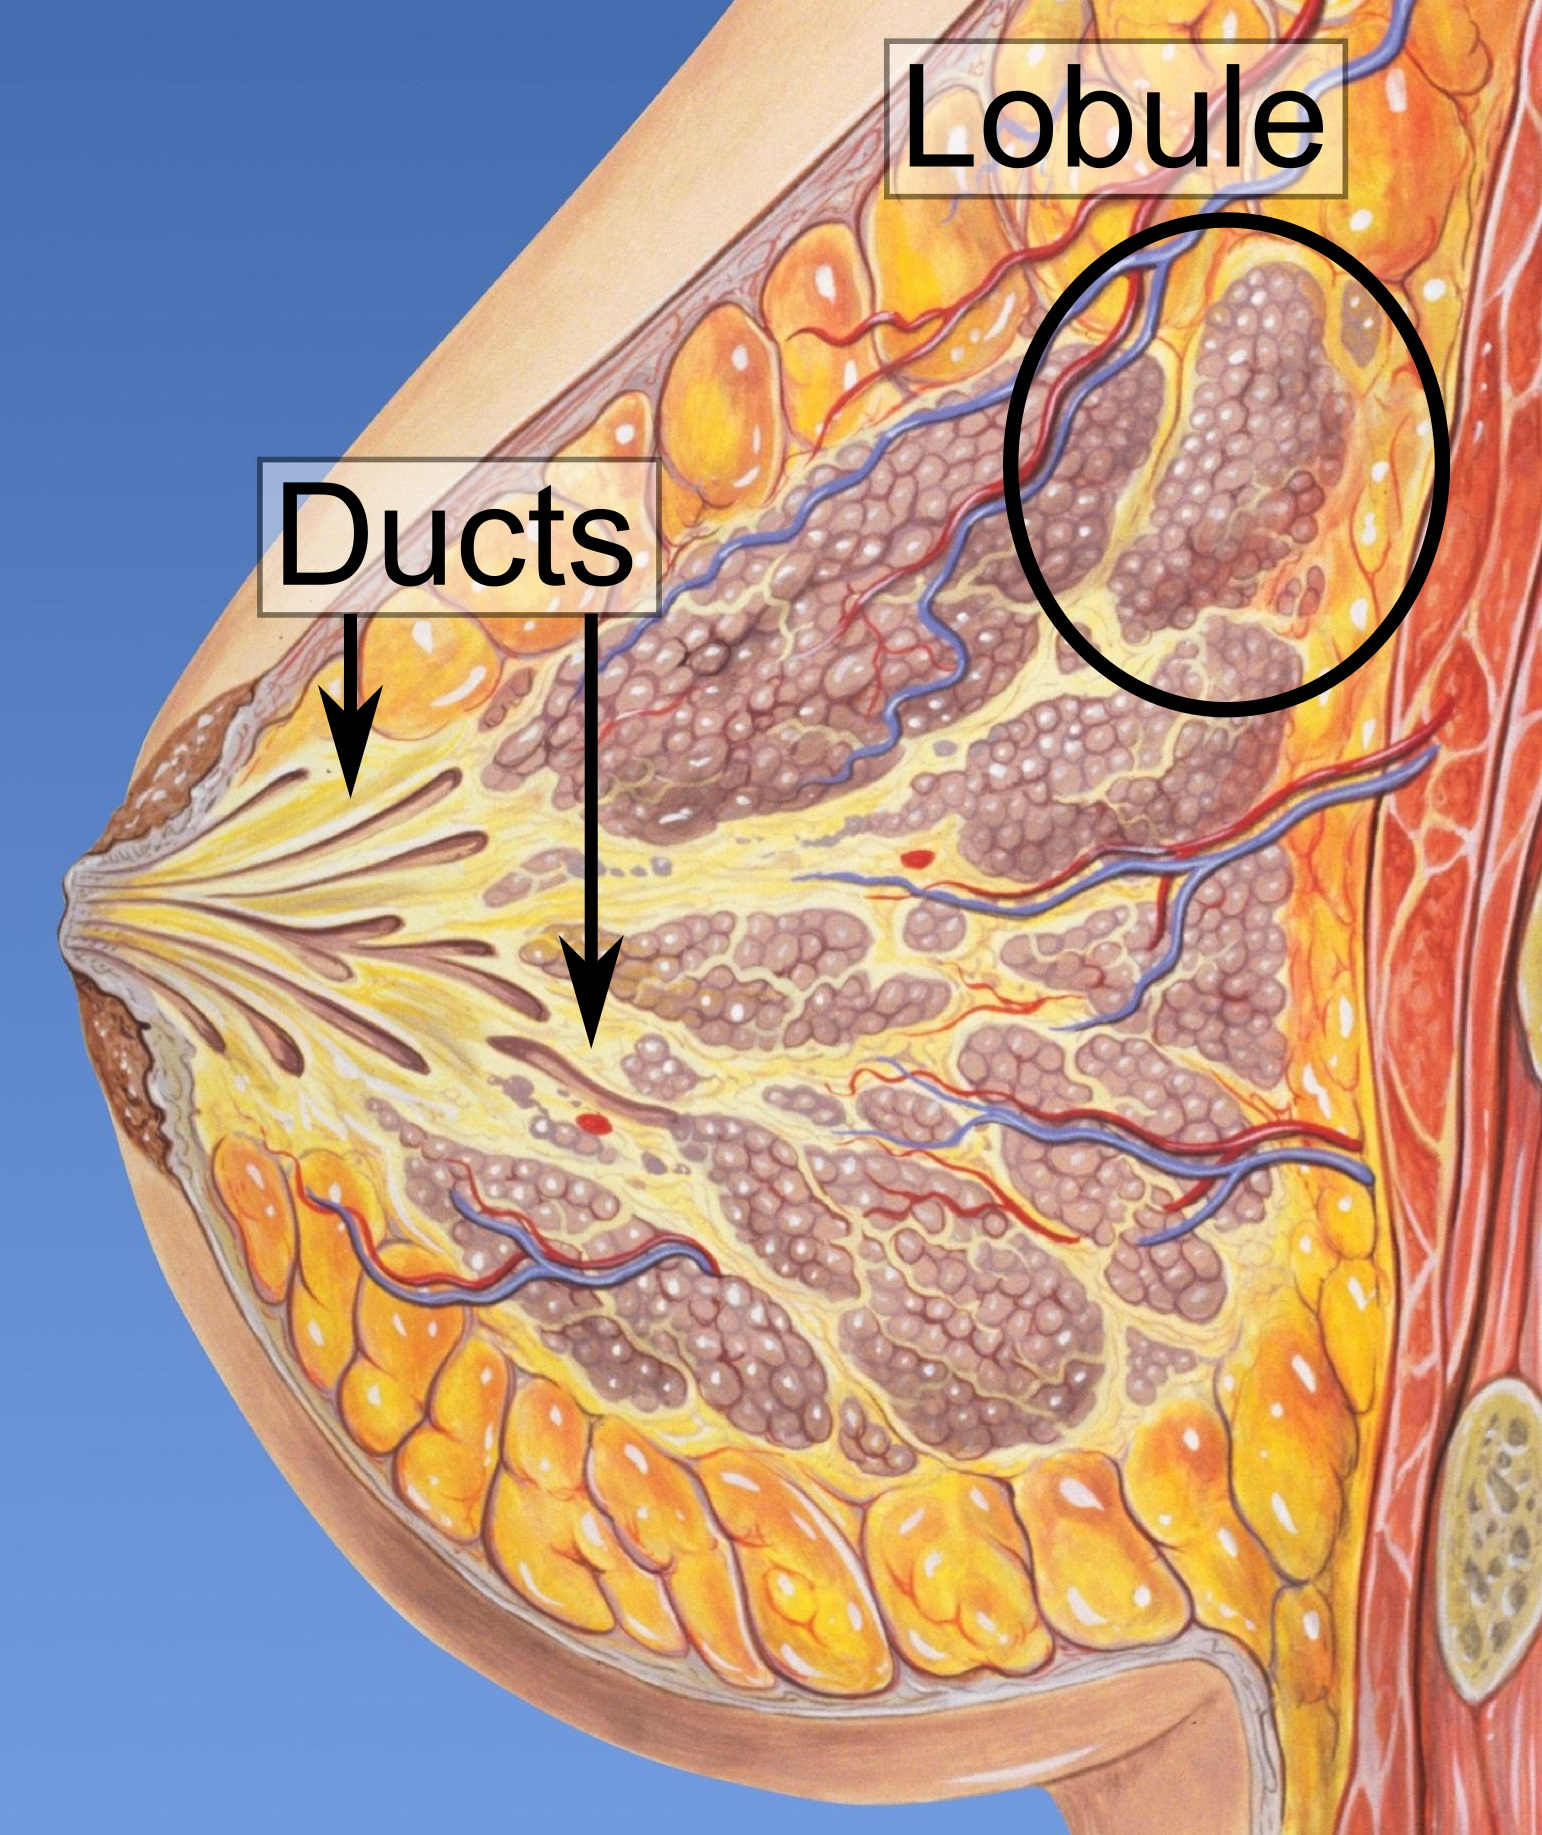 ductal papilloma means